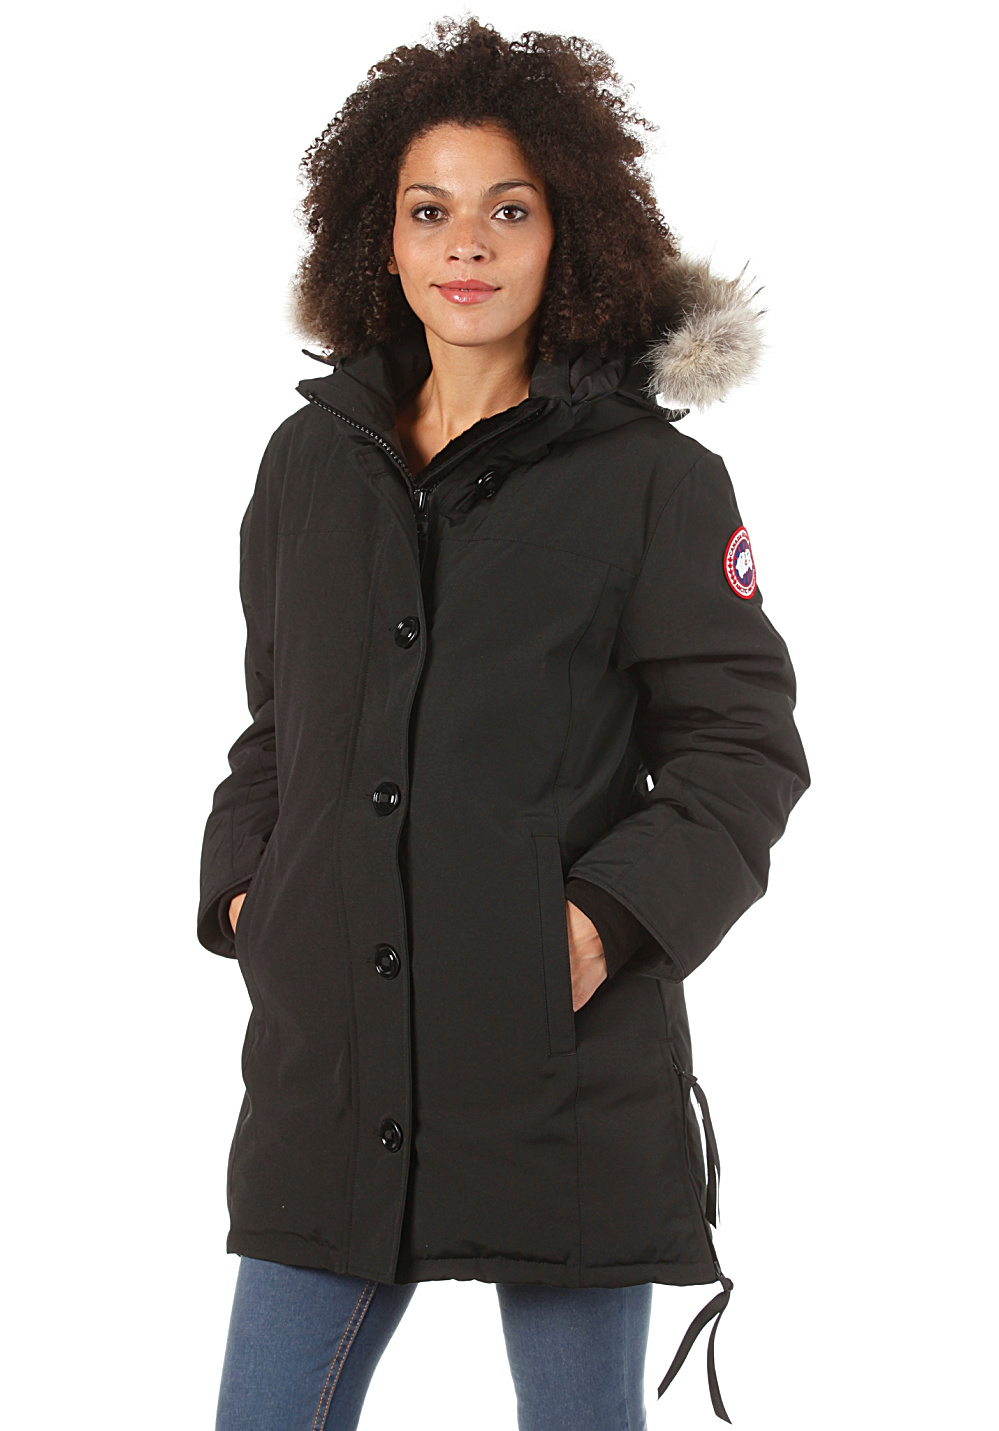 Find great deals on eBay for Womens Black Down Parka in Coats and Jackets for the Modern Lady. Shop with confidence. Find great deals on eBay for Womens Black Down Parka in Coats and Jackets for the Modern Lady. Shop with confidence. Skip to main content. eBay: Shop by .